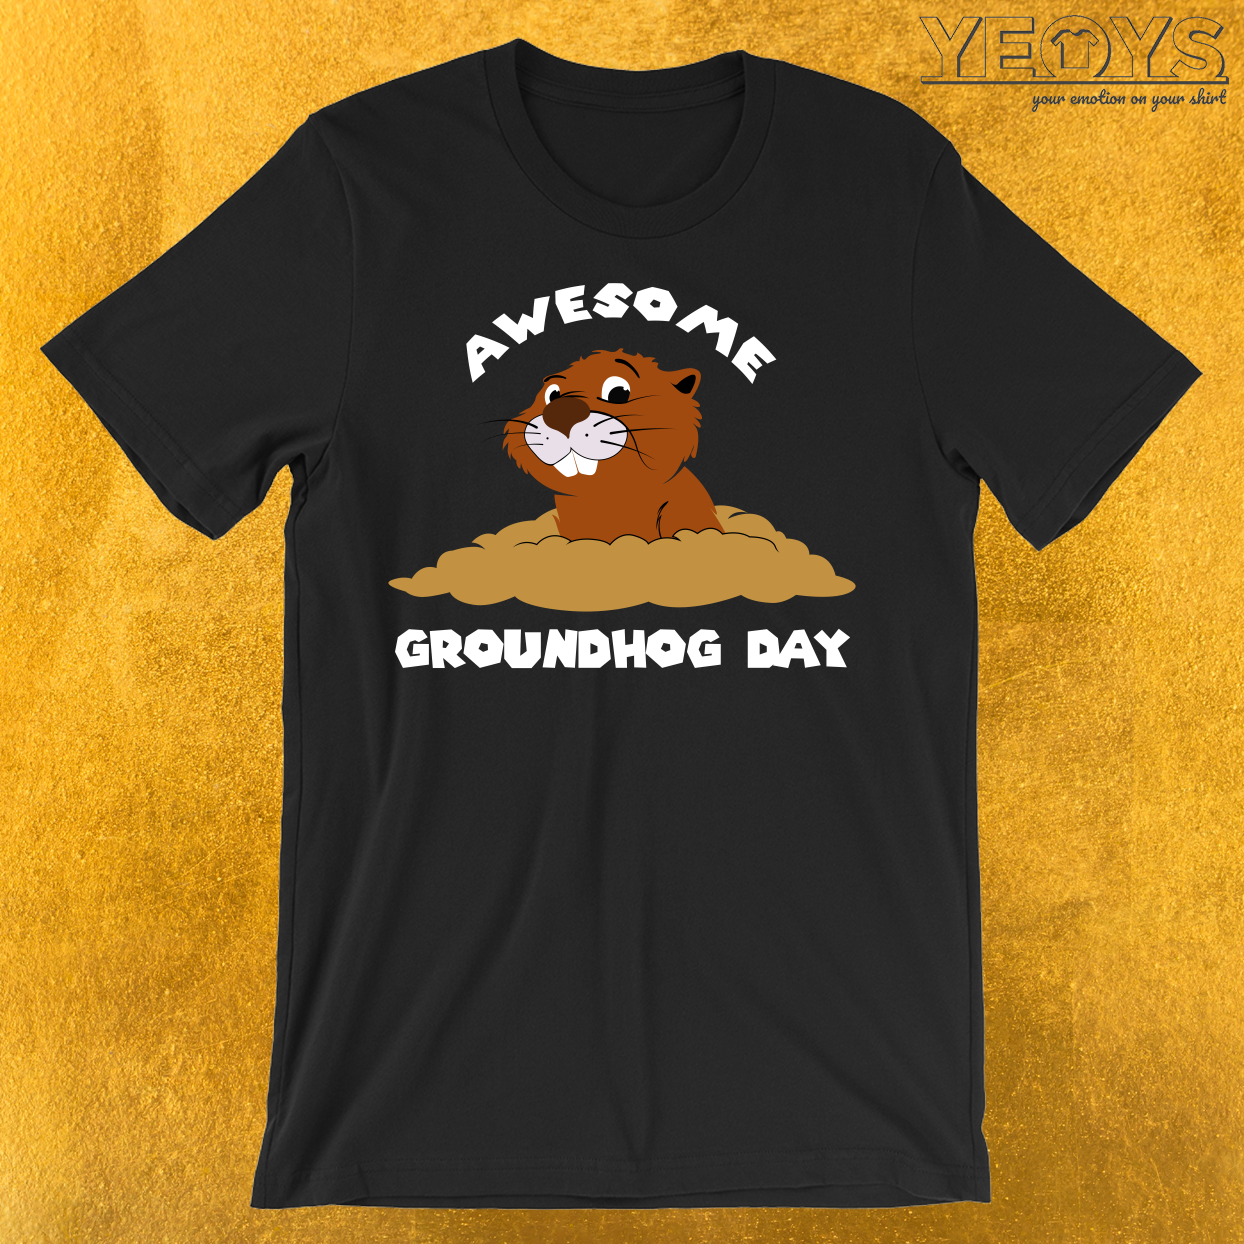 Awesome Groundhog Day T-Shirt